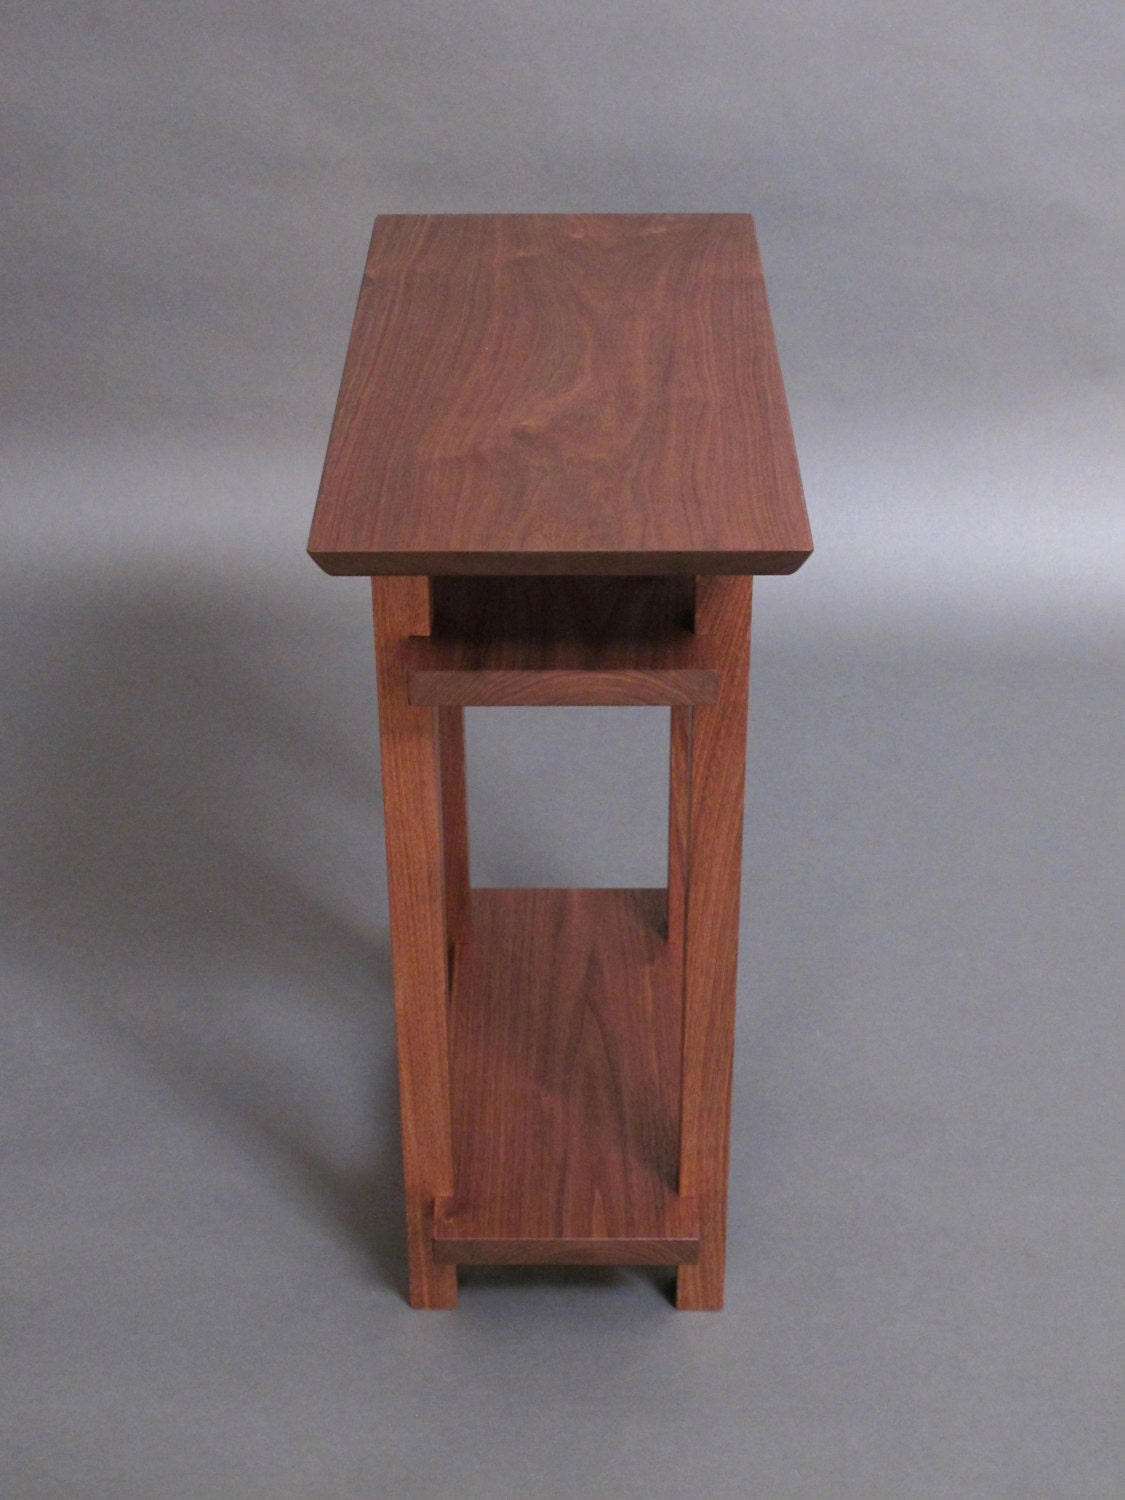 Small narrow wood table with two shelves small side table for Small wooden side table